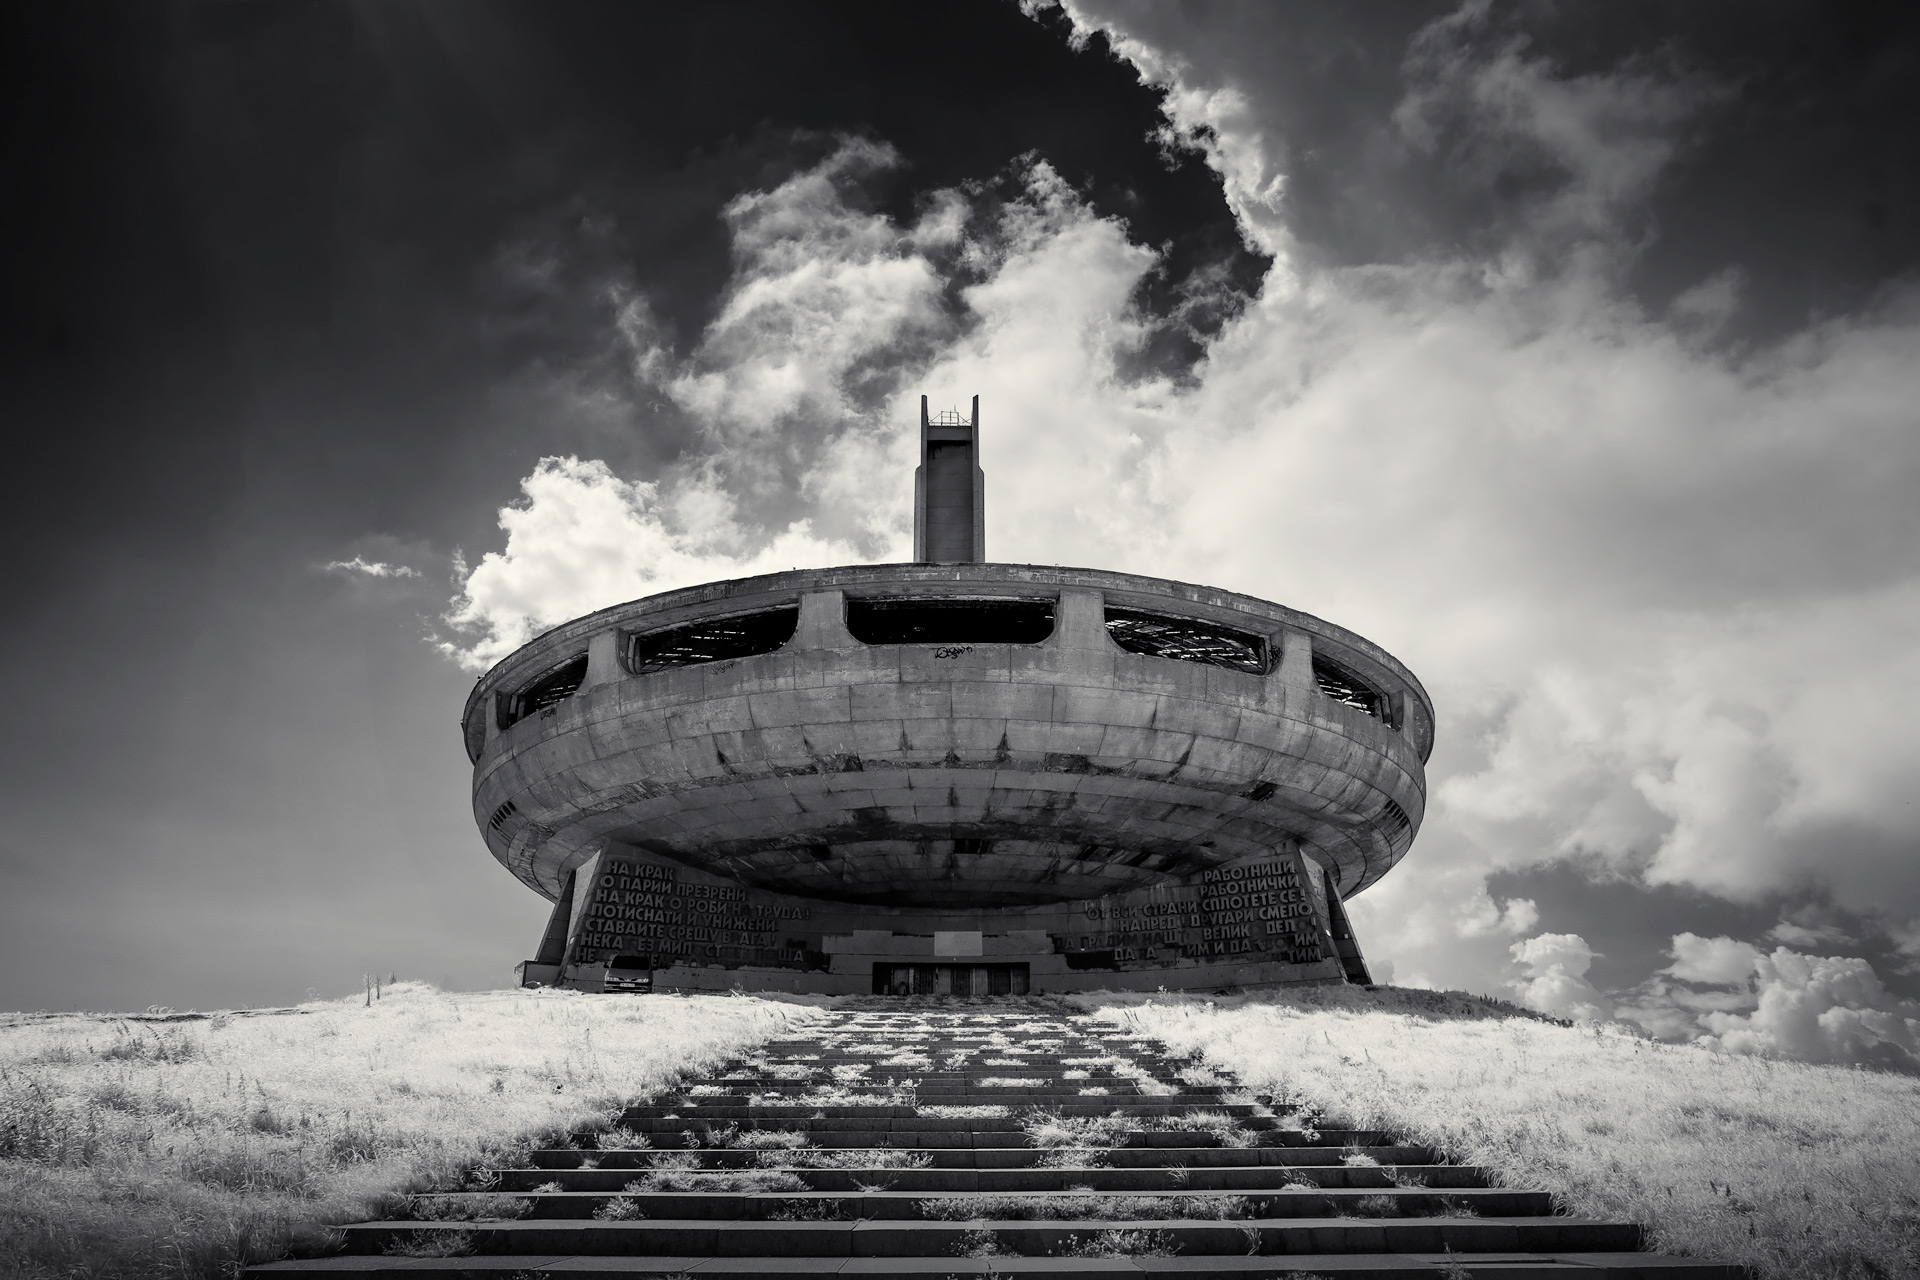 Buzludzha Monument, Bulgaria (IR) (2018) / Show the Original, Landscape Photography, Infrared, Fujinon XF 14mm f/2.8, Fujifilm X-E2, Buzludzha, Bulgaria [buzludzha monument ir 2018 f2]